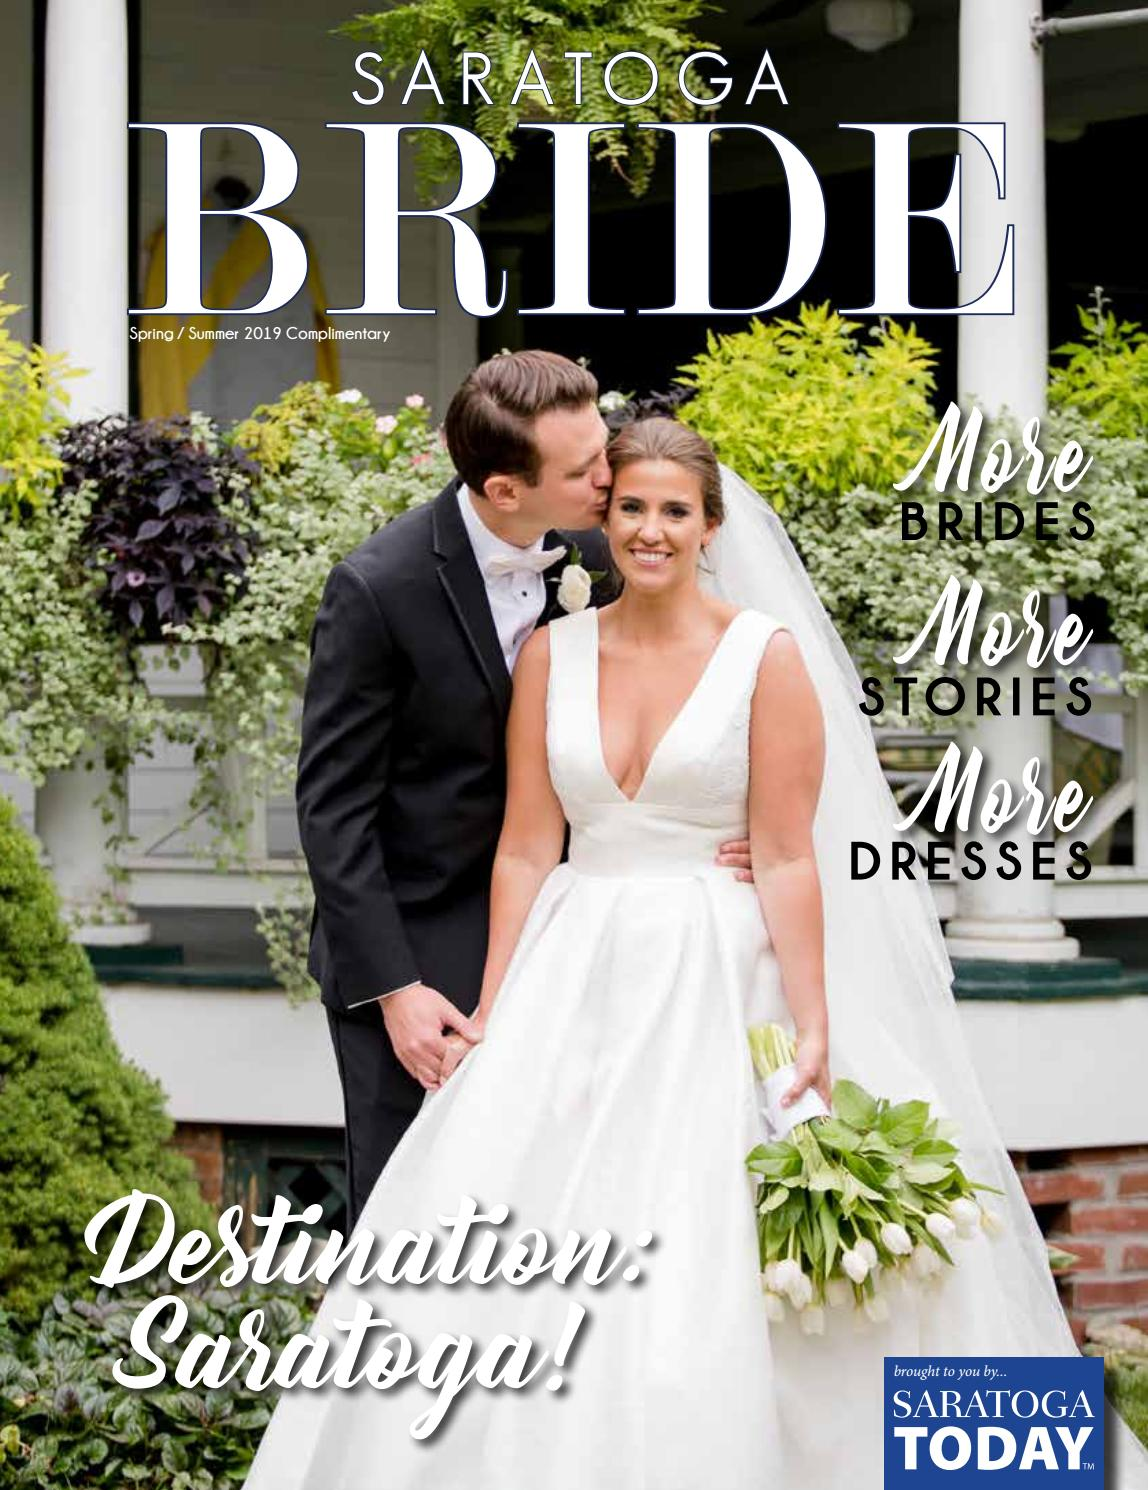 09a159051 Saratoga Bride Spring 2019 by Saratoga TODAY - issuu